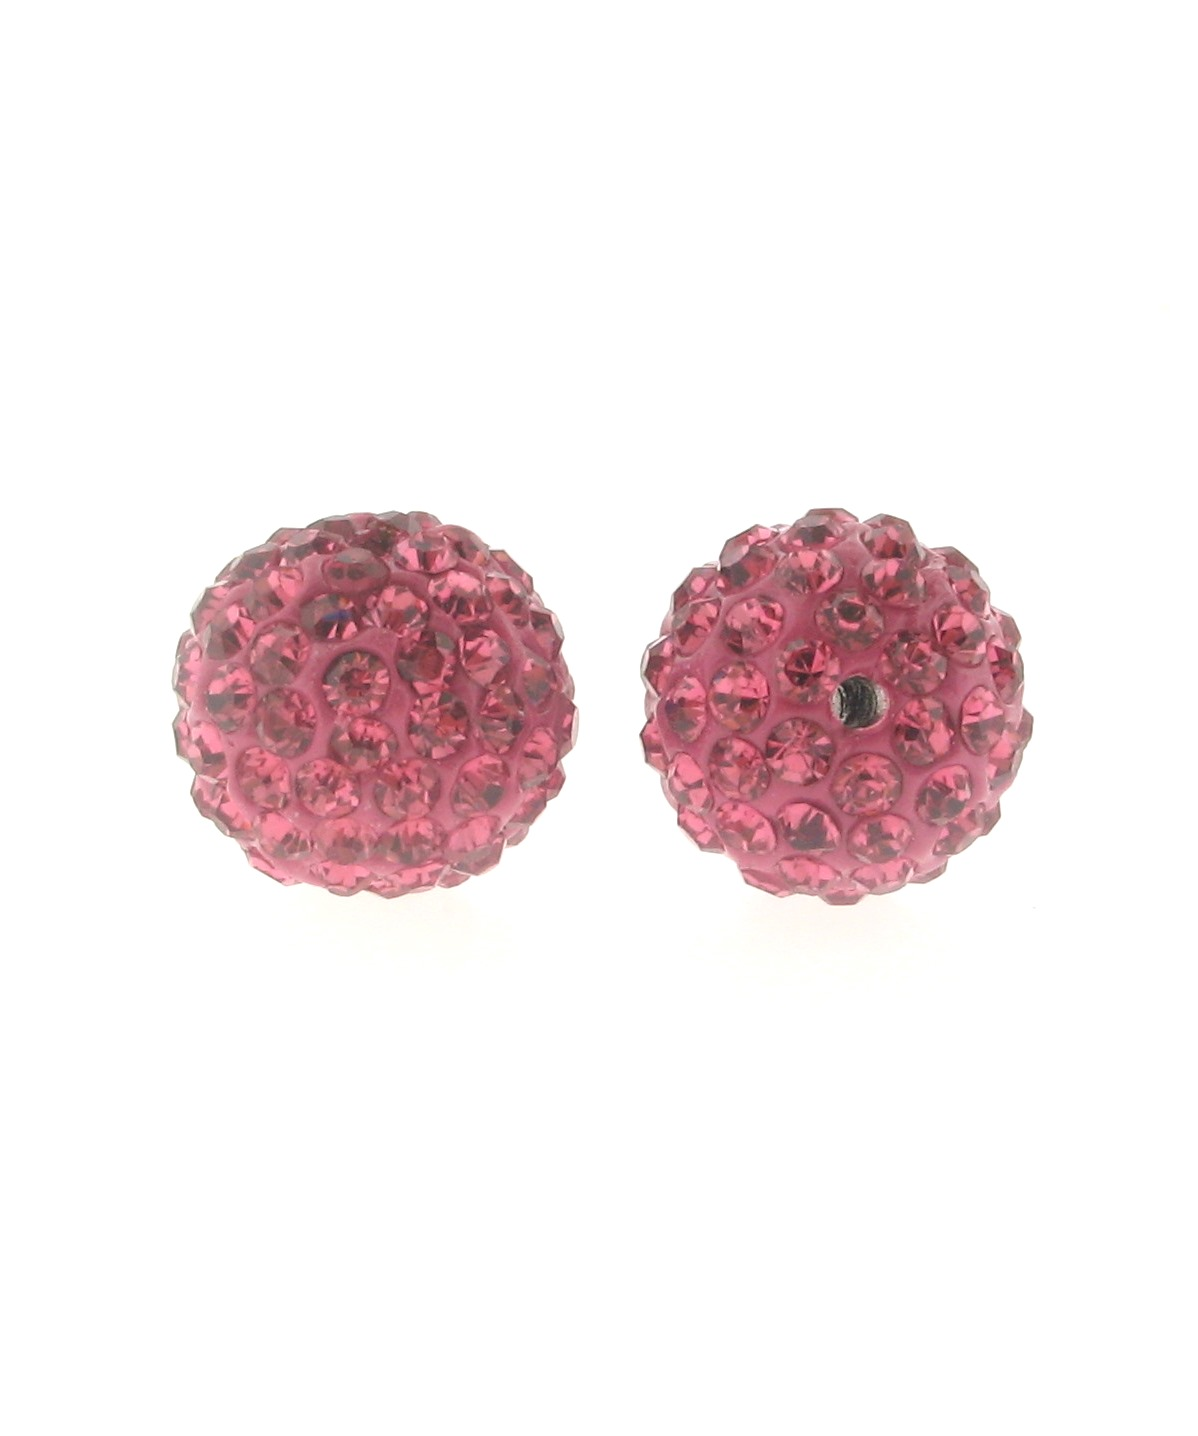 Shamballa Beads – What They Are and Tips for Using Them in Jewelry Making